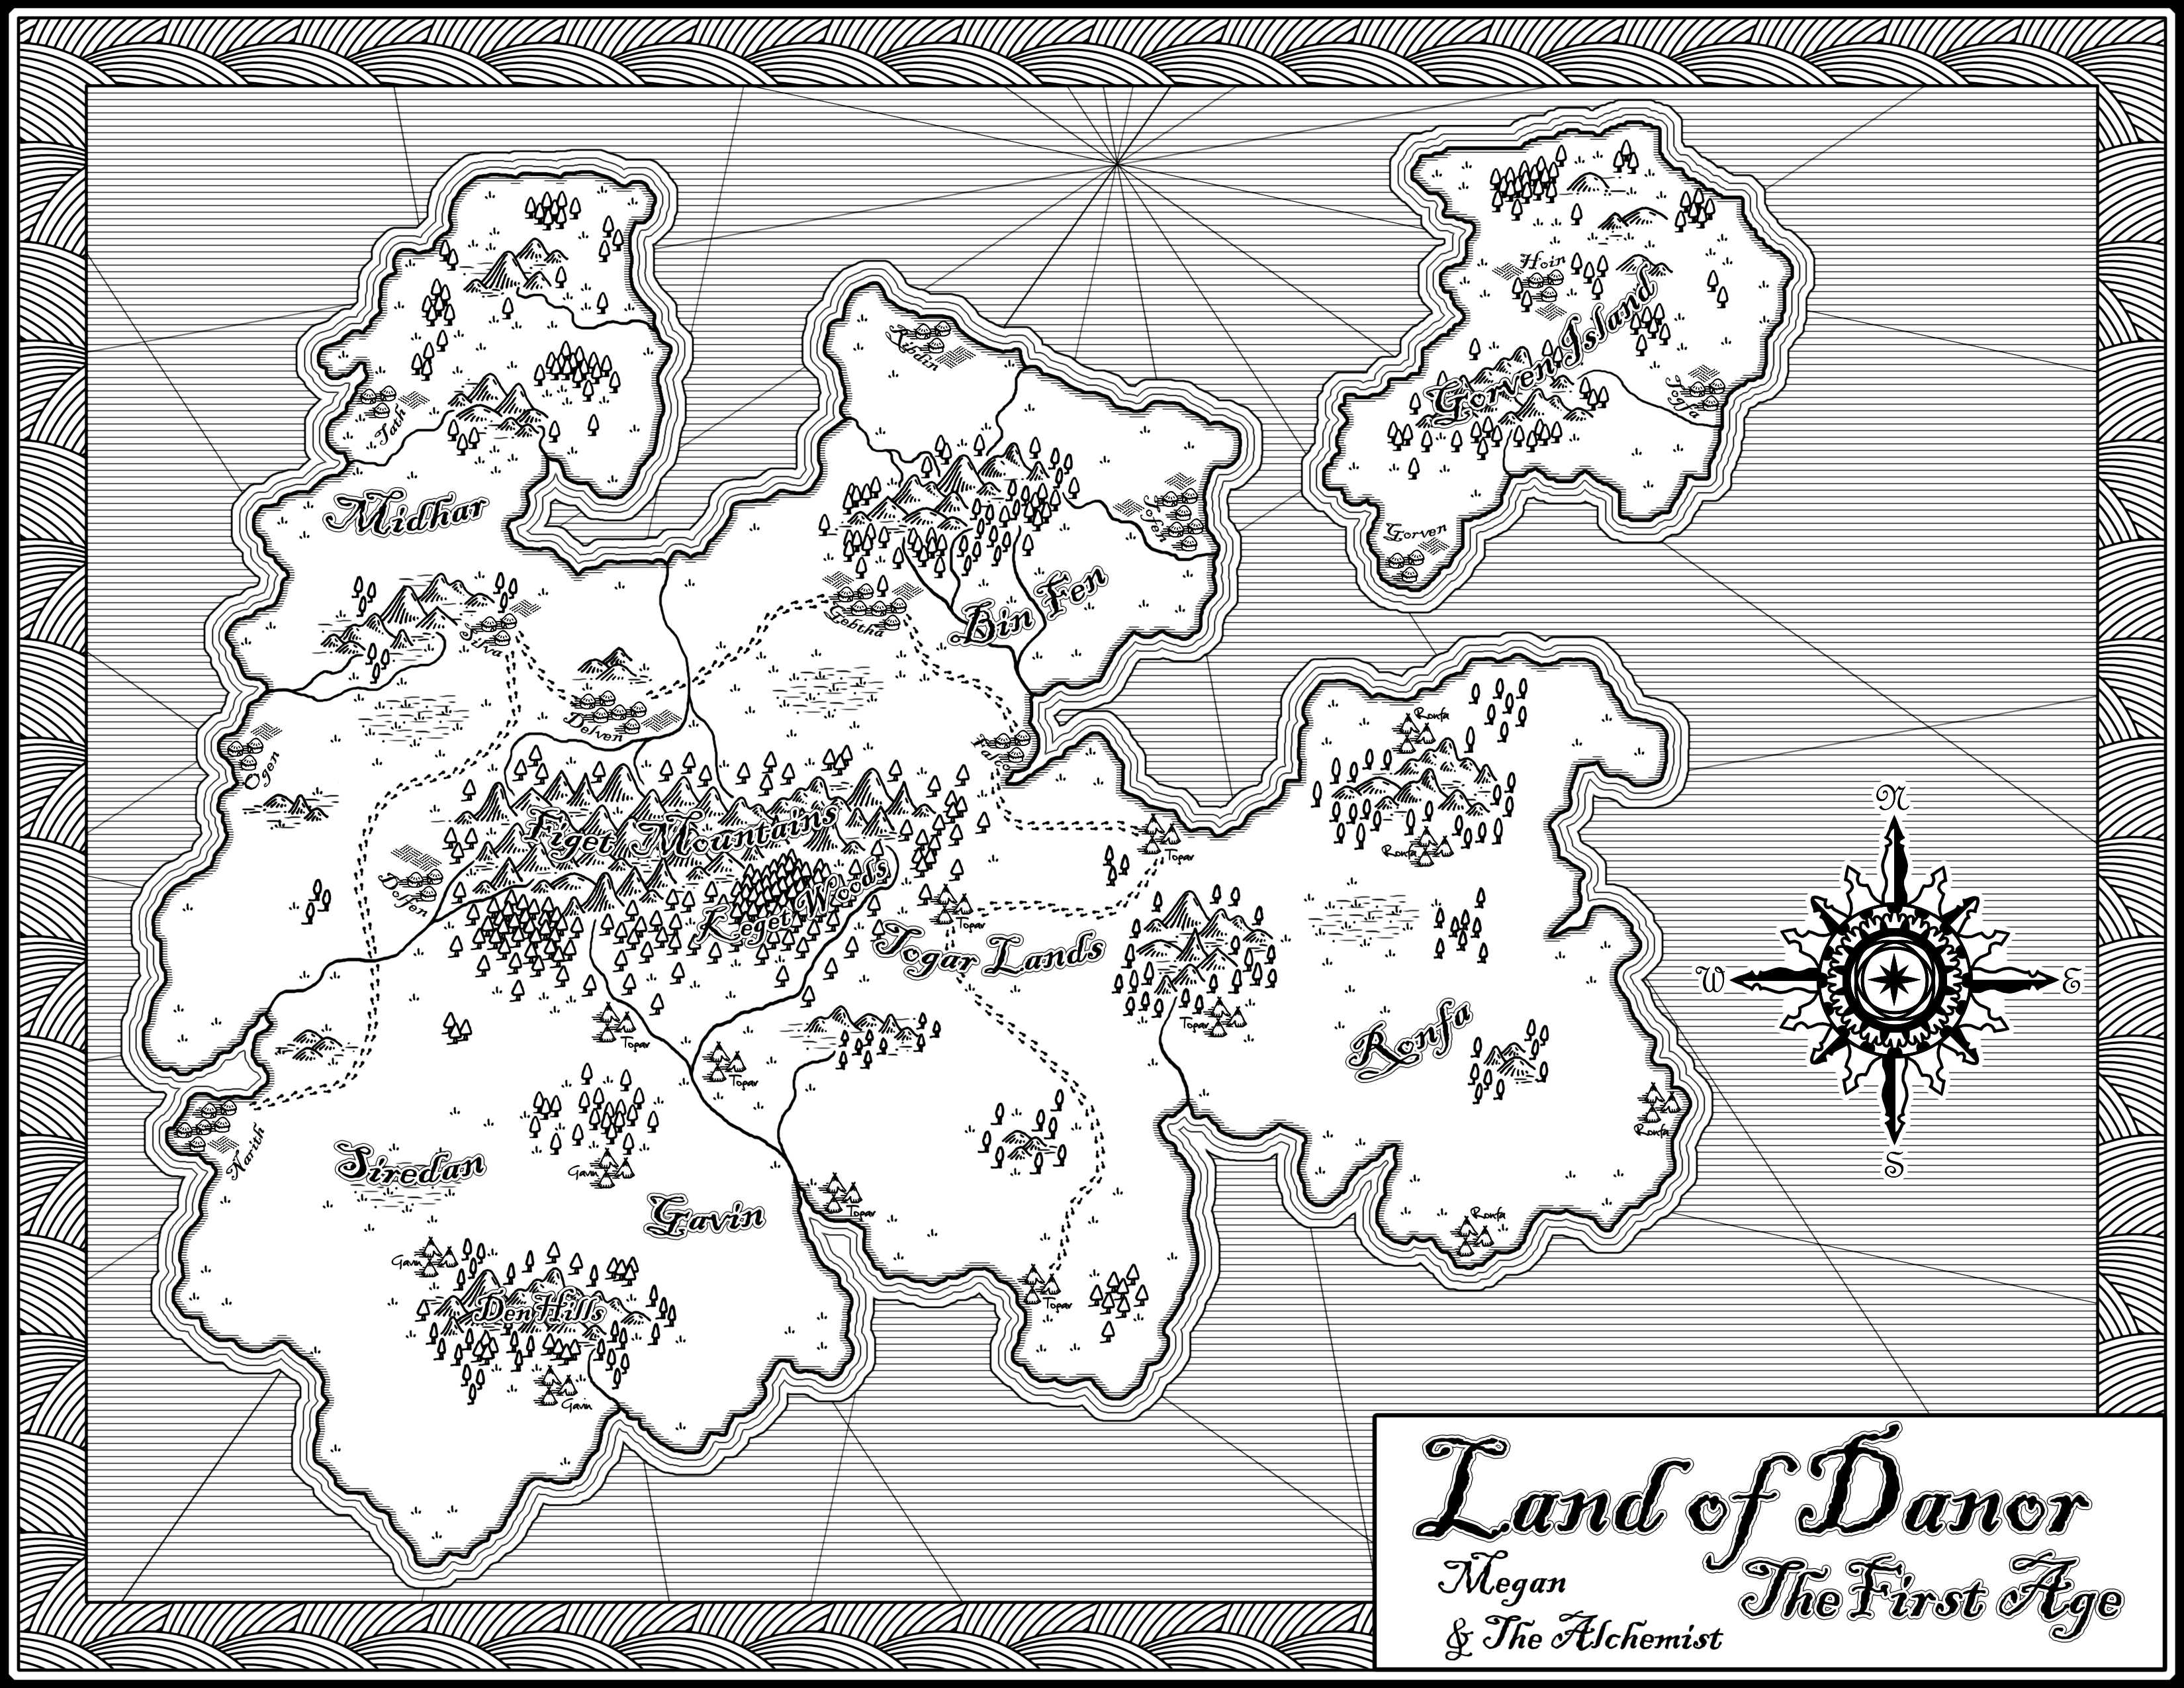 Black & White Challenge Map from March 12.  I used hand-drawn elements that were scanned in and edited in Photoshop 7.